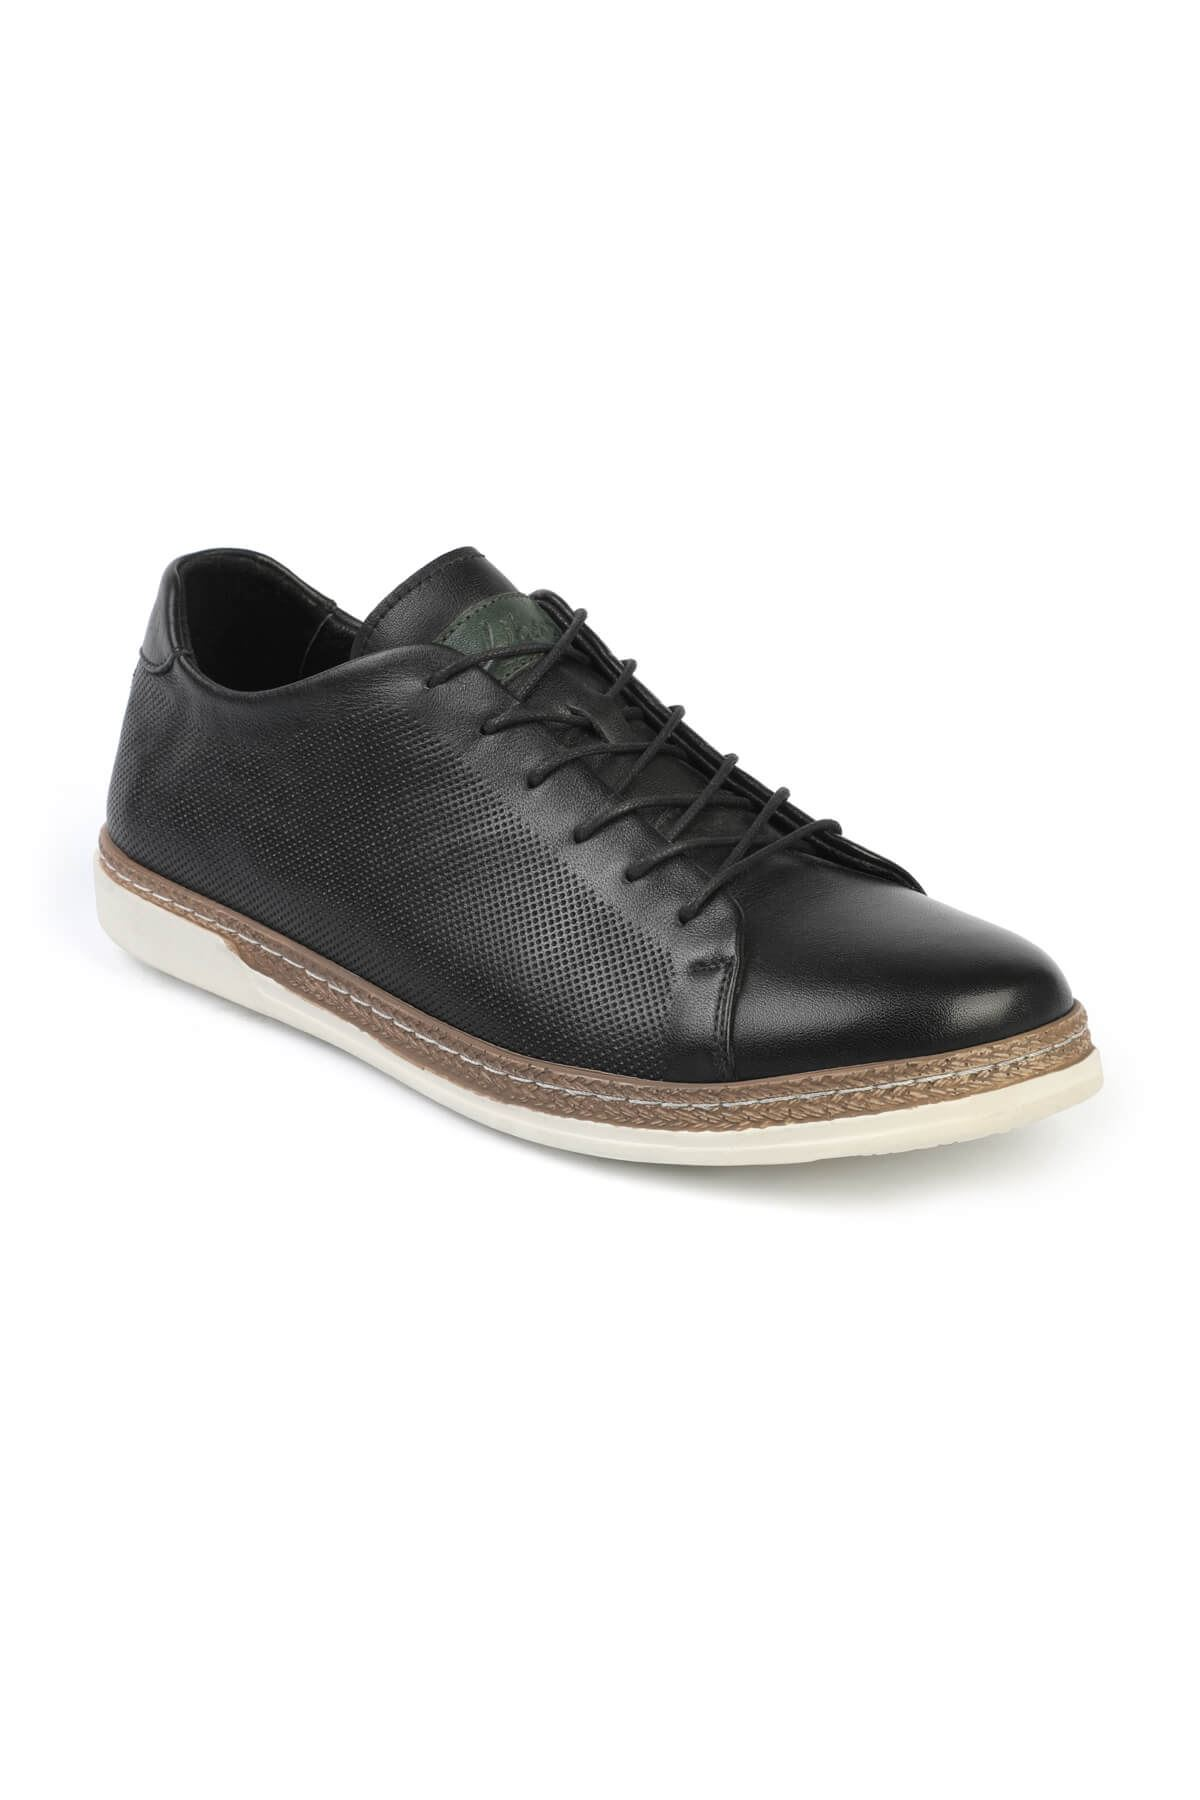 Libero C780 Black Casual Shoes